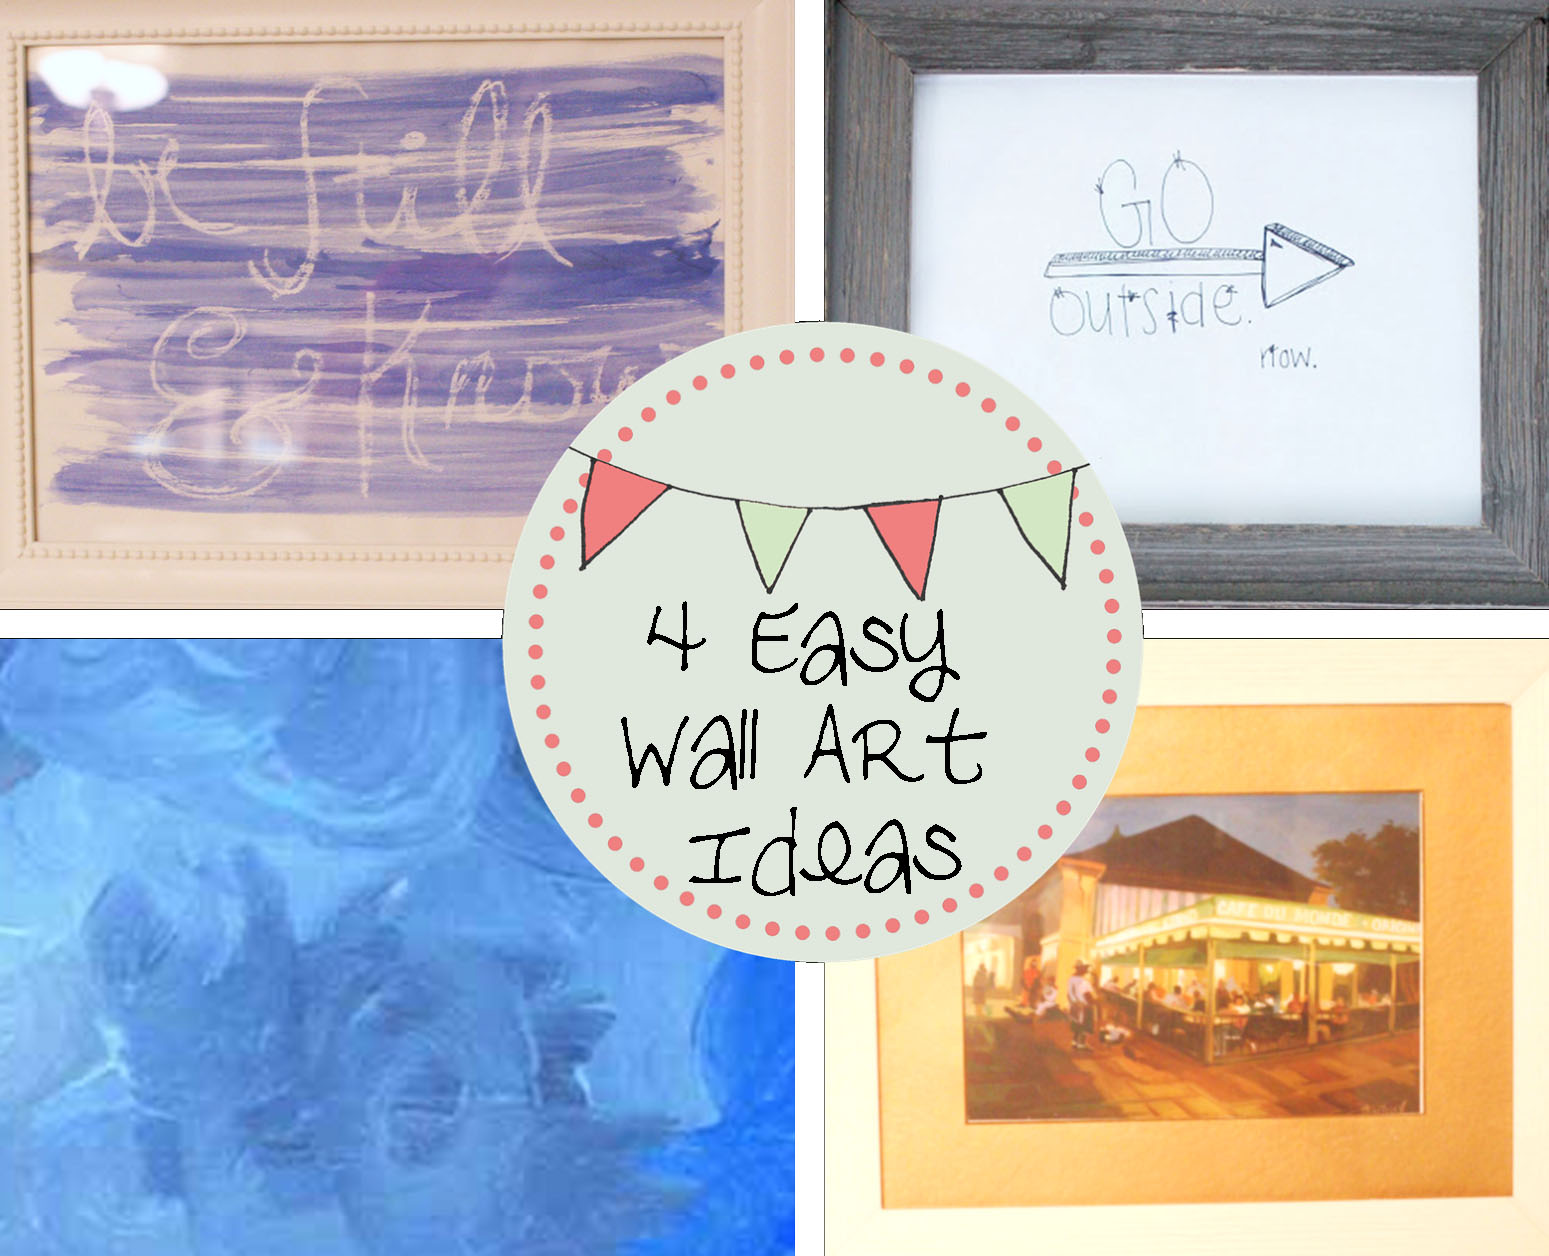 Craftivity Designs: Spring Spruce Up: 4 Easy Wall Art Ideas